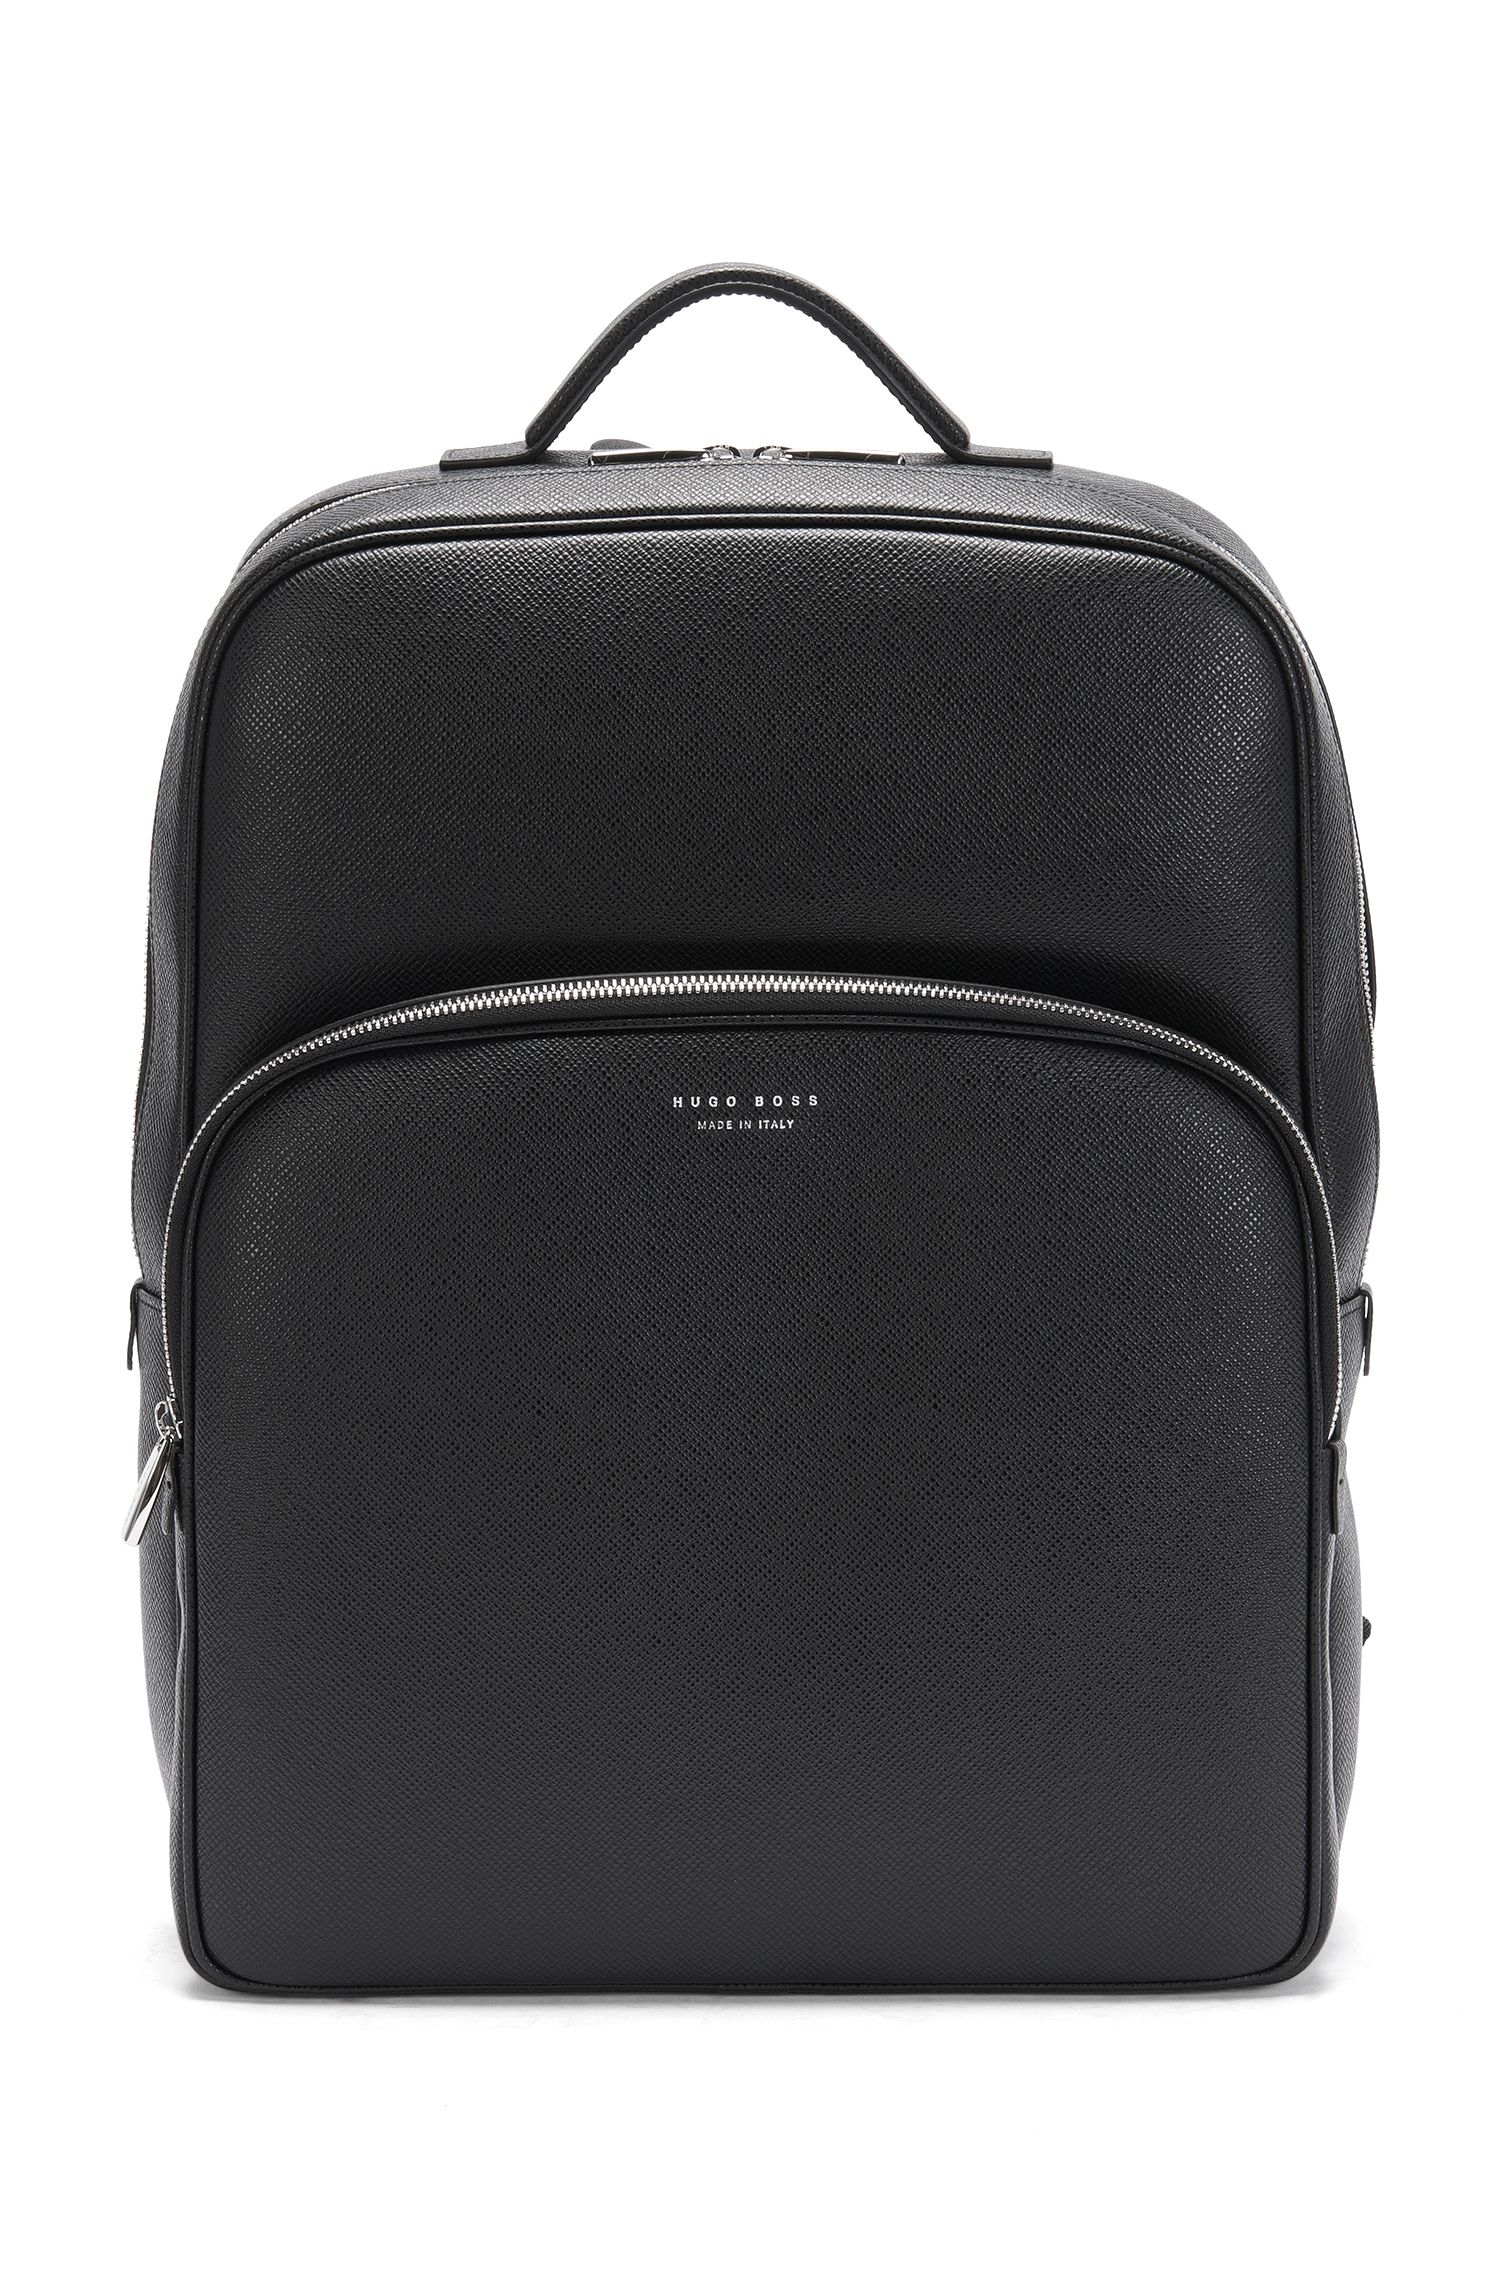 Calfskin Palmellato Backpack | Signature B Backpack